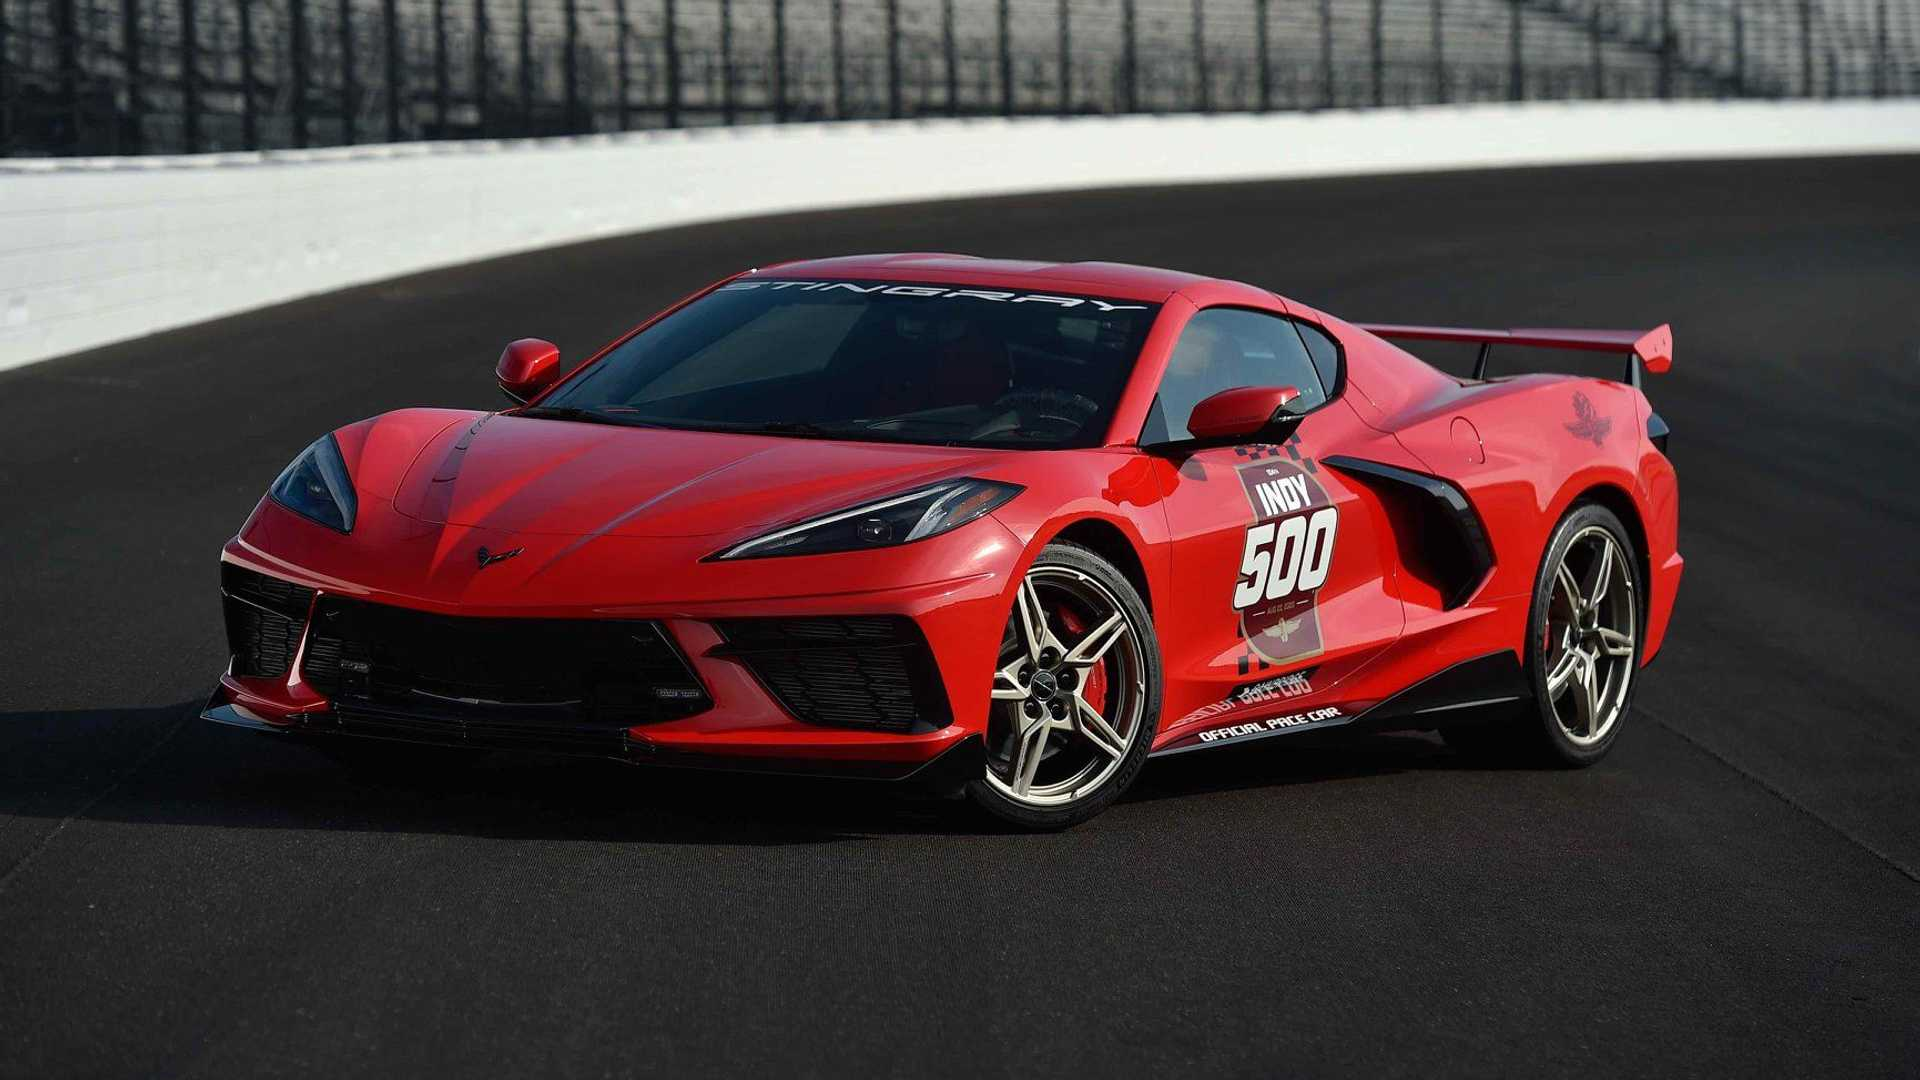 2019 - [Chevrolet] Corvette C8 Stingray - Page 7 2020-chevy-corvette-c8-indianapolis-500-pace-car-front-end